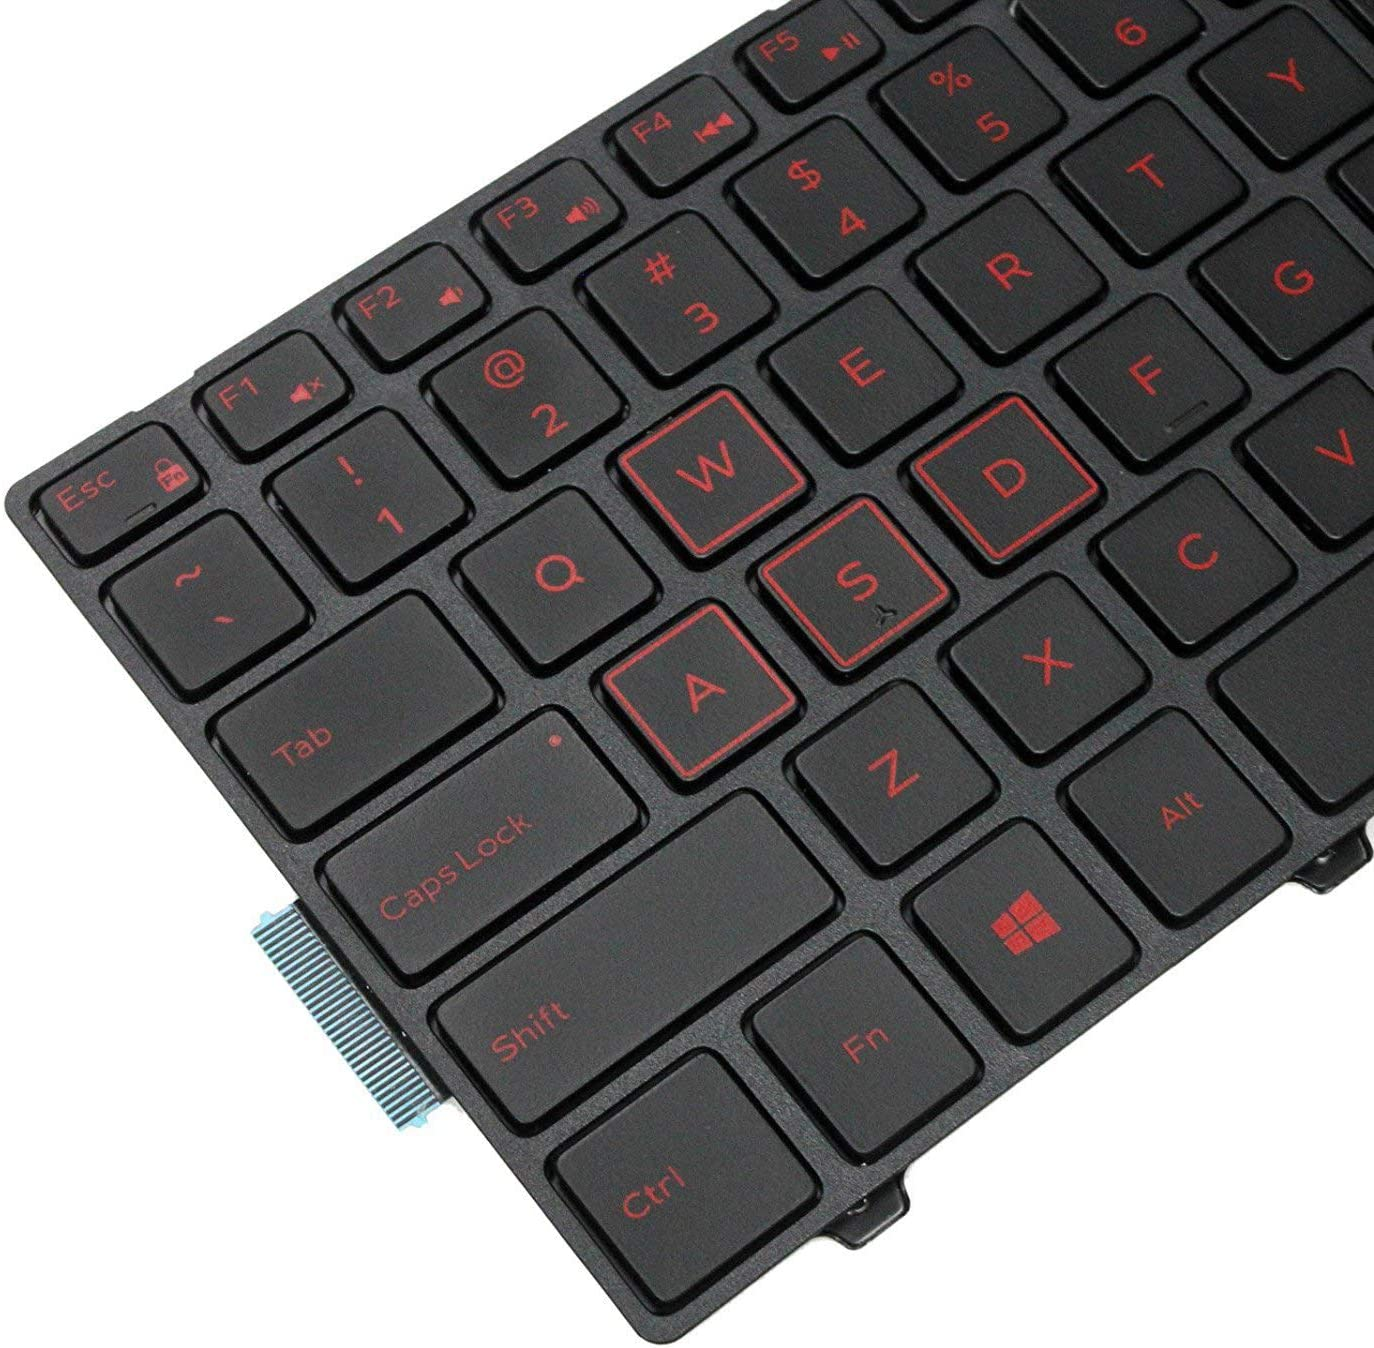 Inspiron 15 3542 3543 3551 3552 5555 5542 5545 5547 5551 5558 5552 5559 Series Laptop Without Backlit US Layout 5748 5749 5758 5755 5759 5767 Replacement Keyboard for Dell Inspiron 17 5000